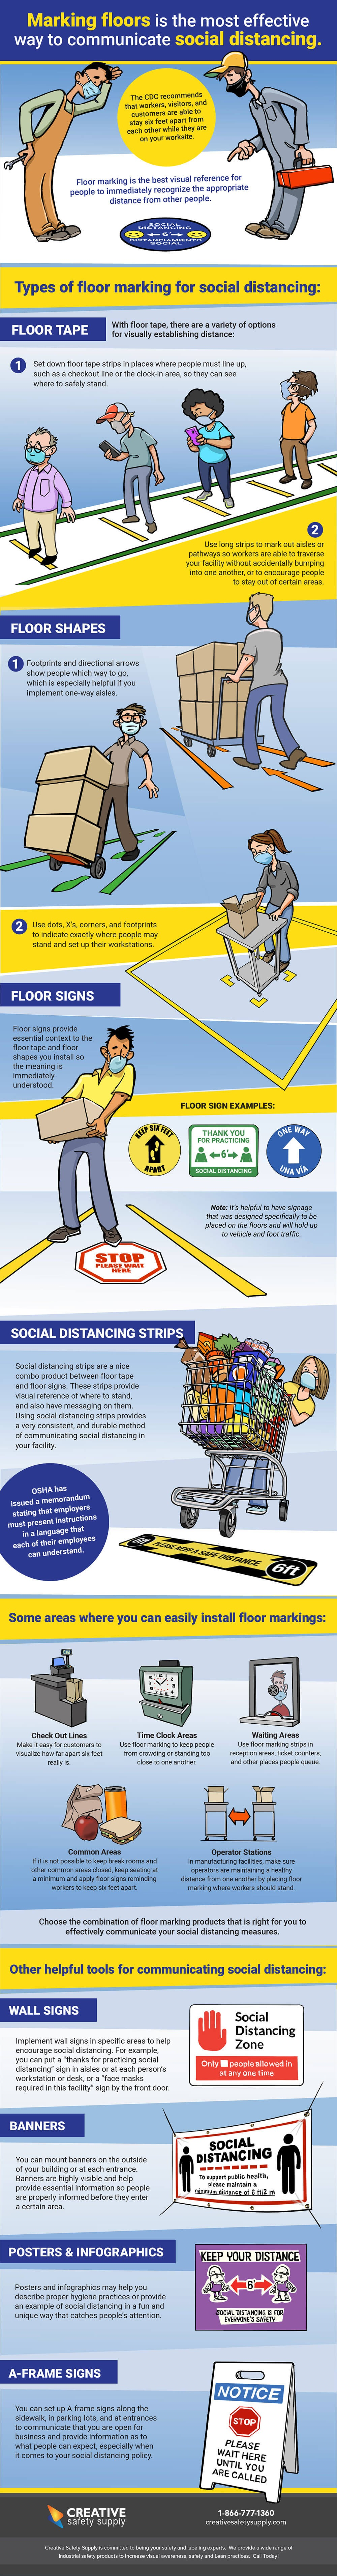 Marking Floors to Communicate Social Distancing #infographic